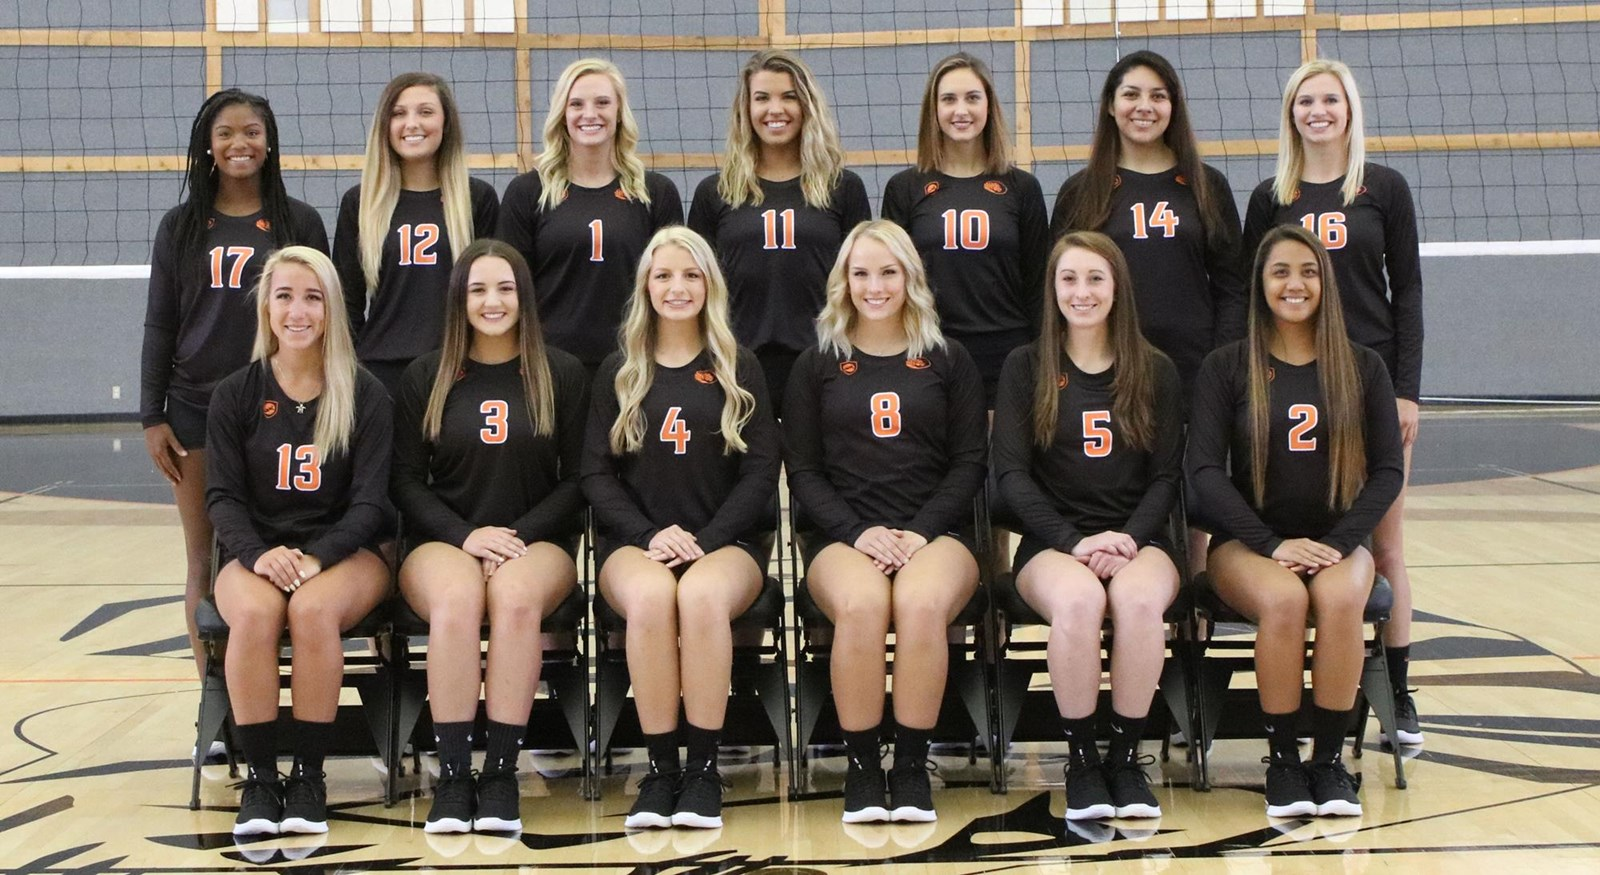 2018 Volleyball Roster East Central University Athletics